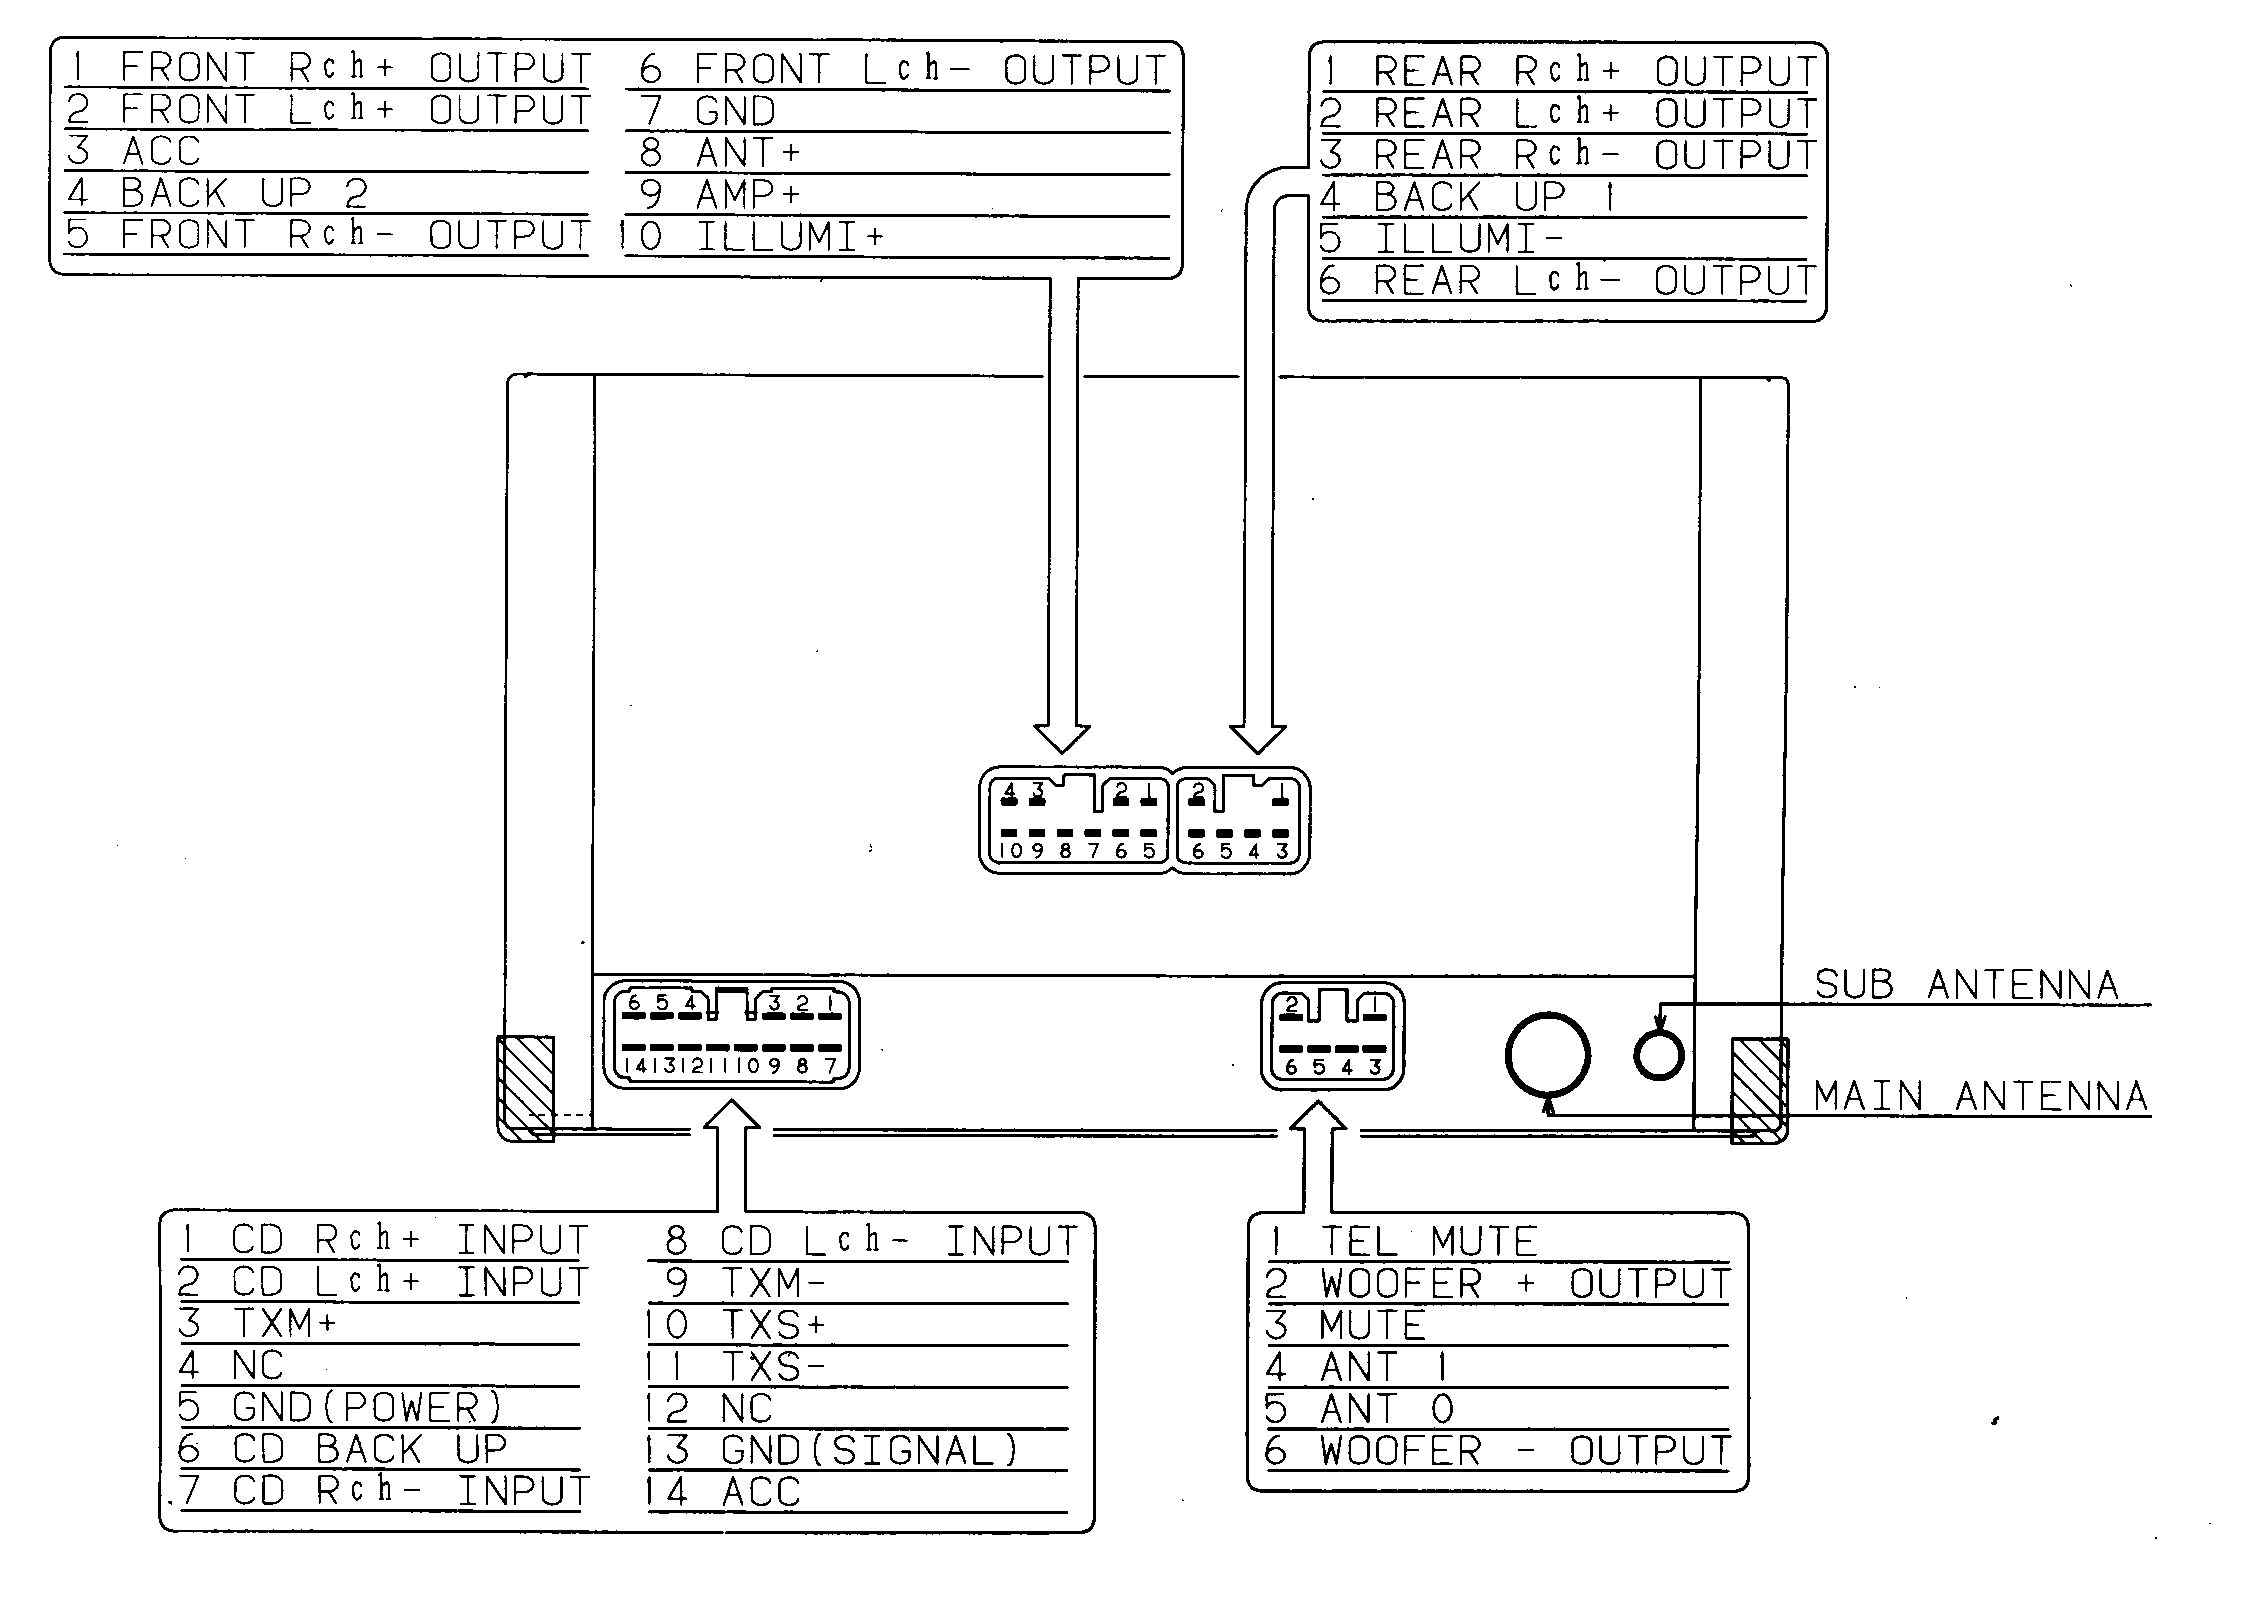 Altima Radio Wiring Diagram On Ram Trailer Wiring Diagram For 2015